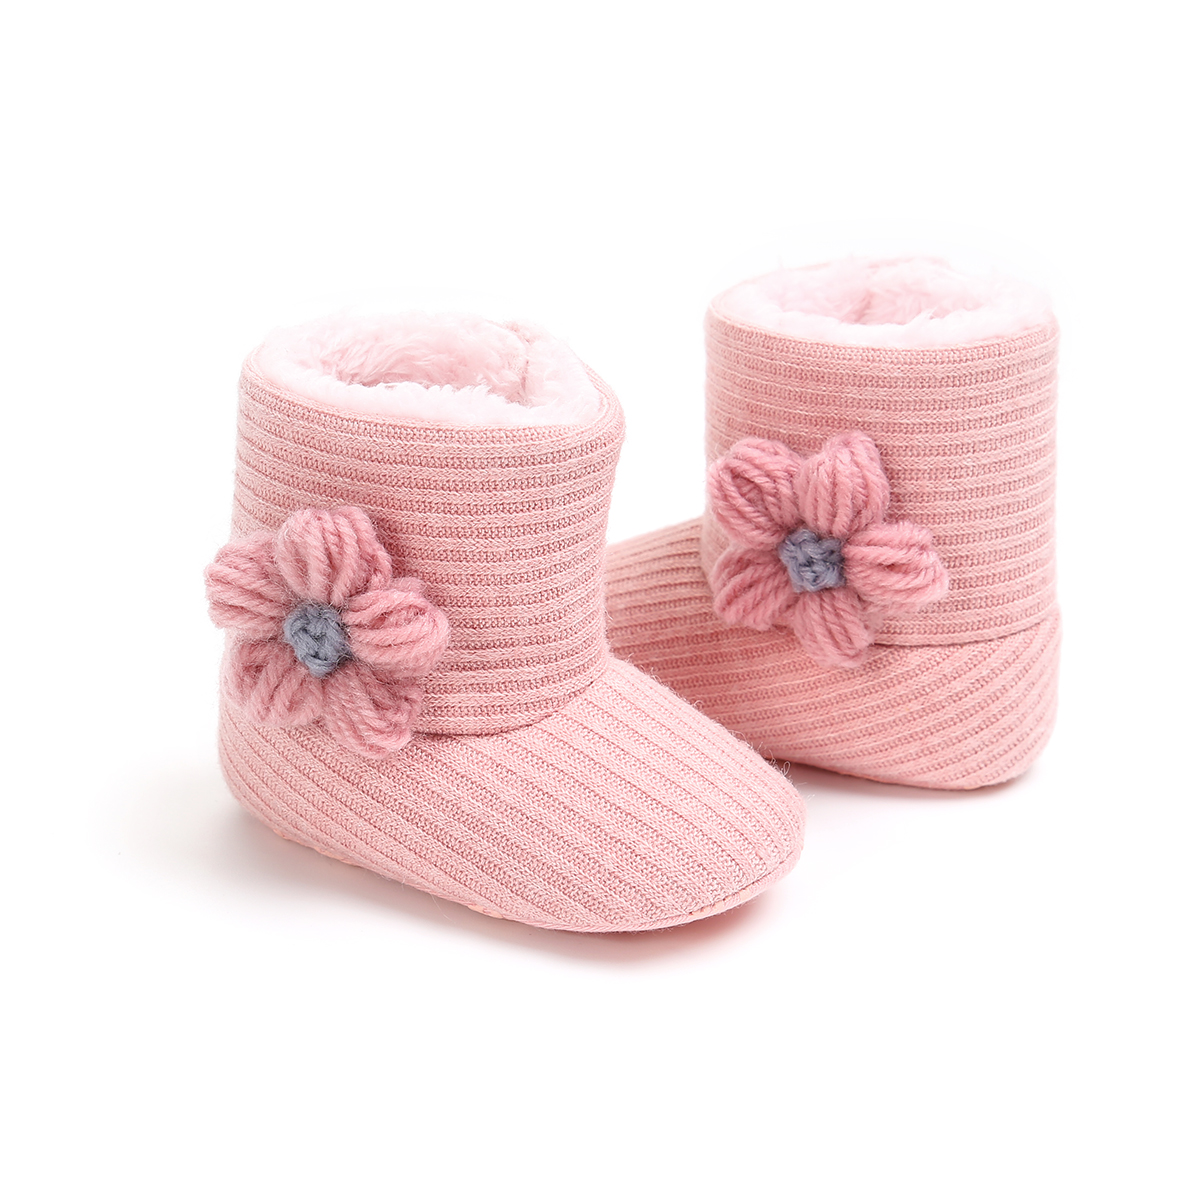 Newborn Baby Infant Toddler Boy Girl Unisex Casual Snow Boots Crib Shoes Prewalker Booties